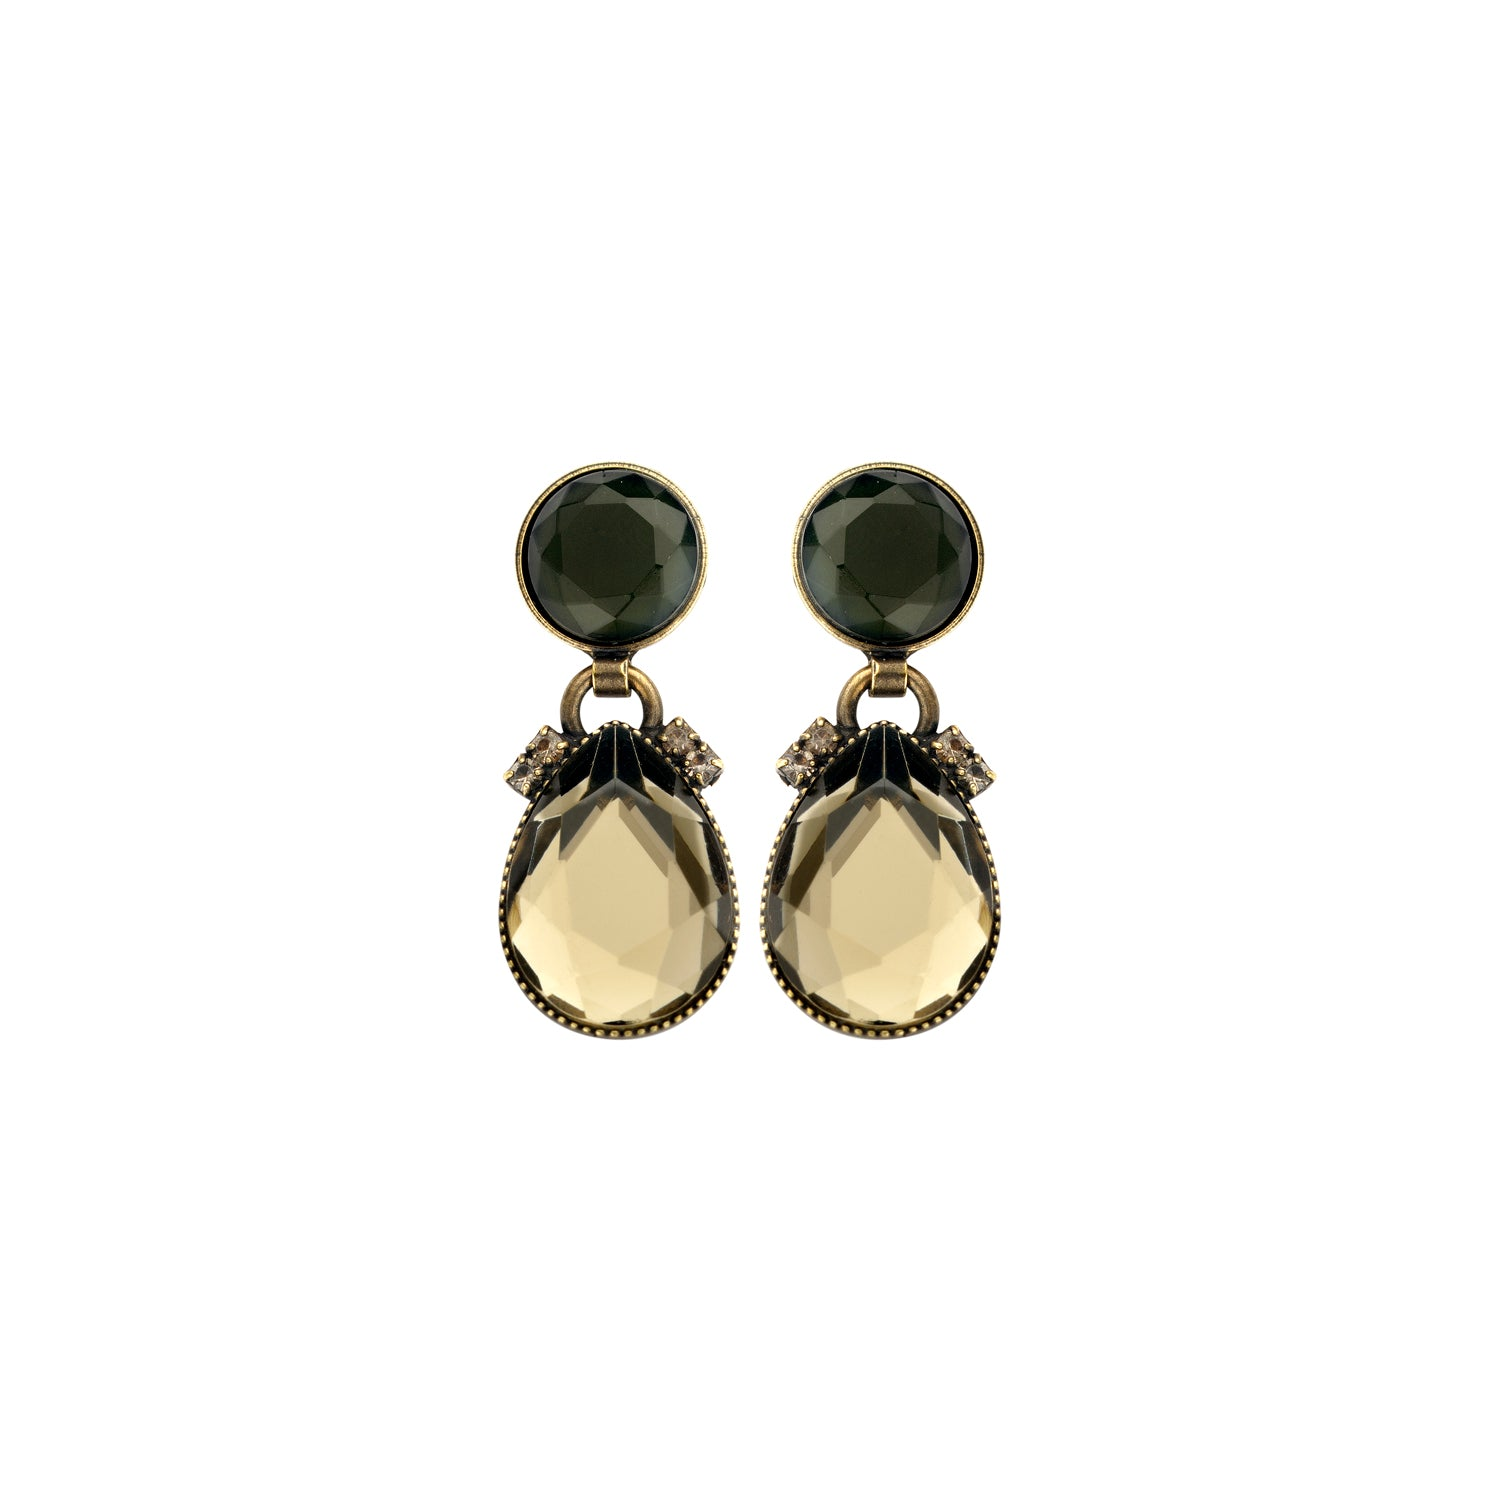 2 mini drops greige earrings